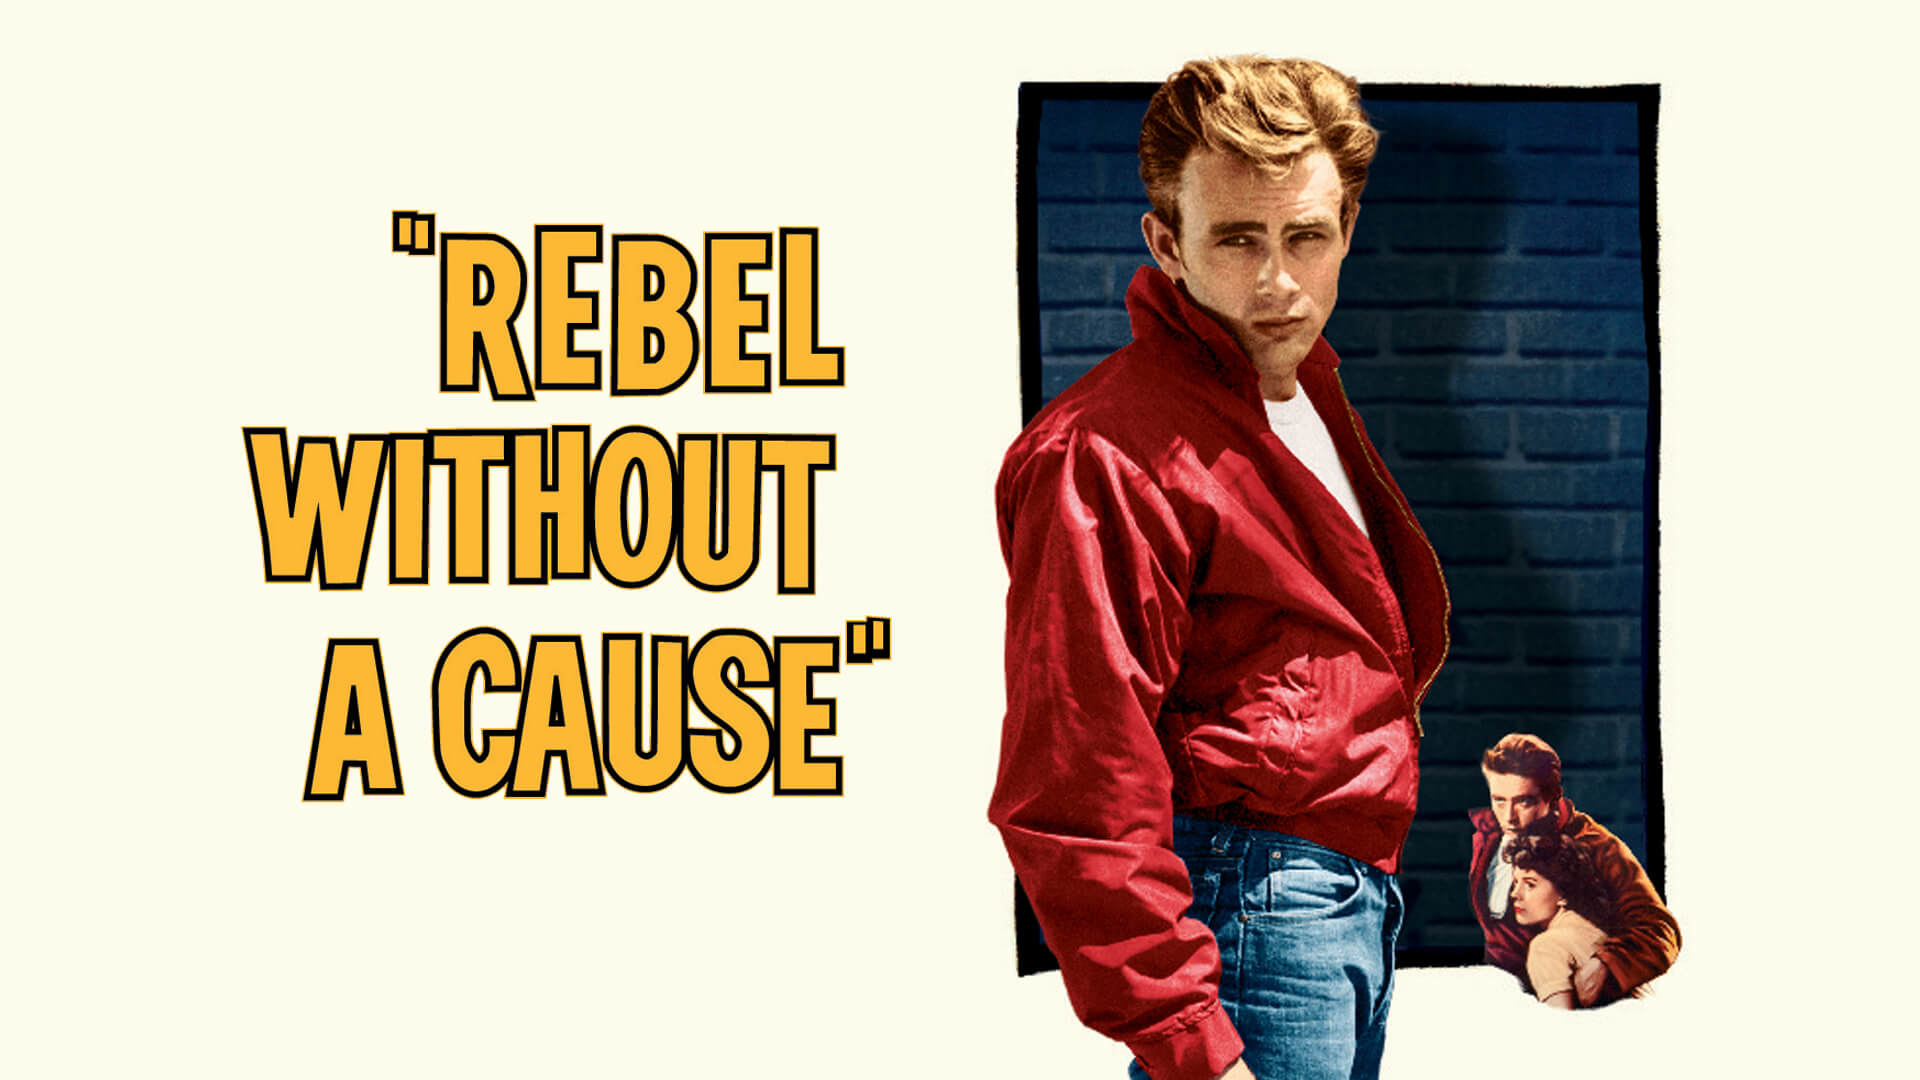 rebel-without-a-cause-1955-movie-james-dean